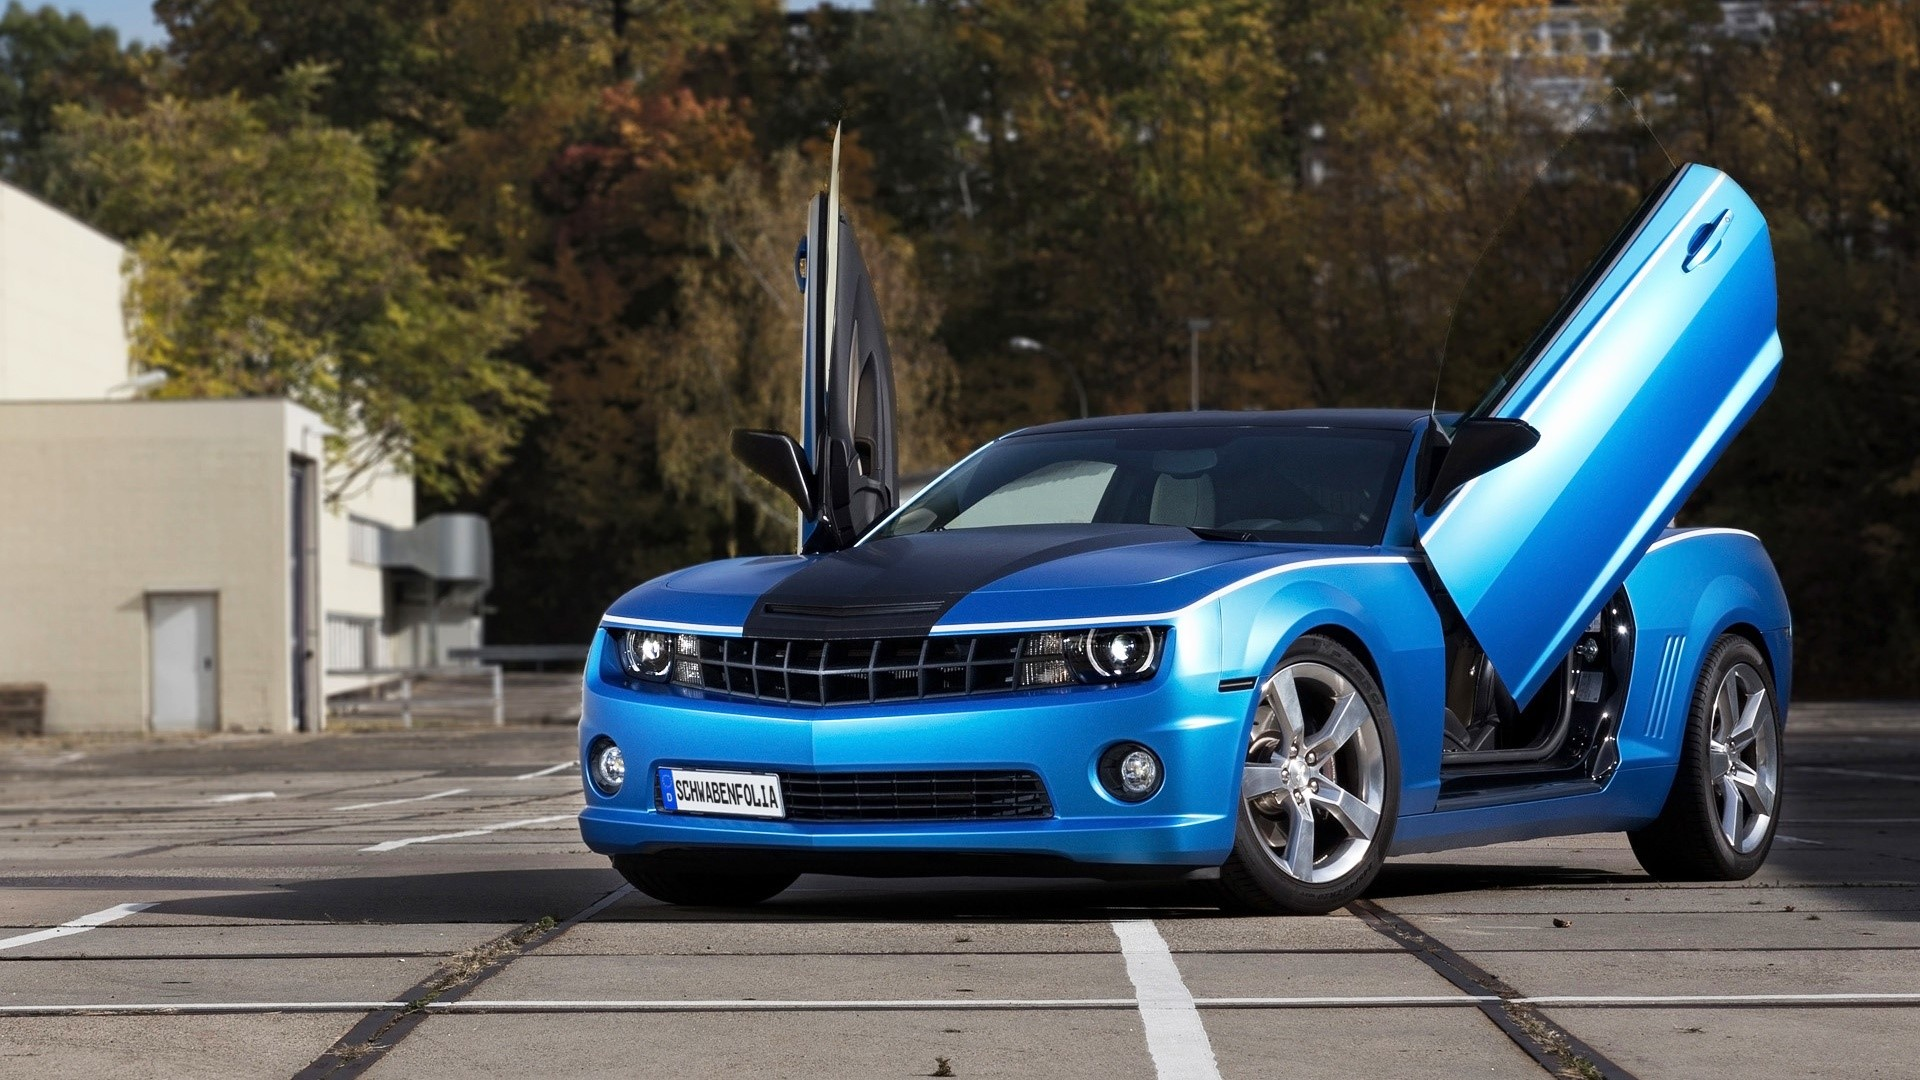 Wallpaper Chevrolet Camaro SS Images